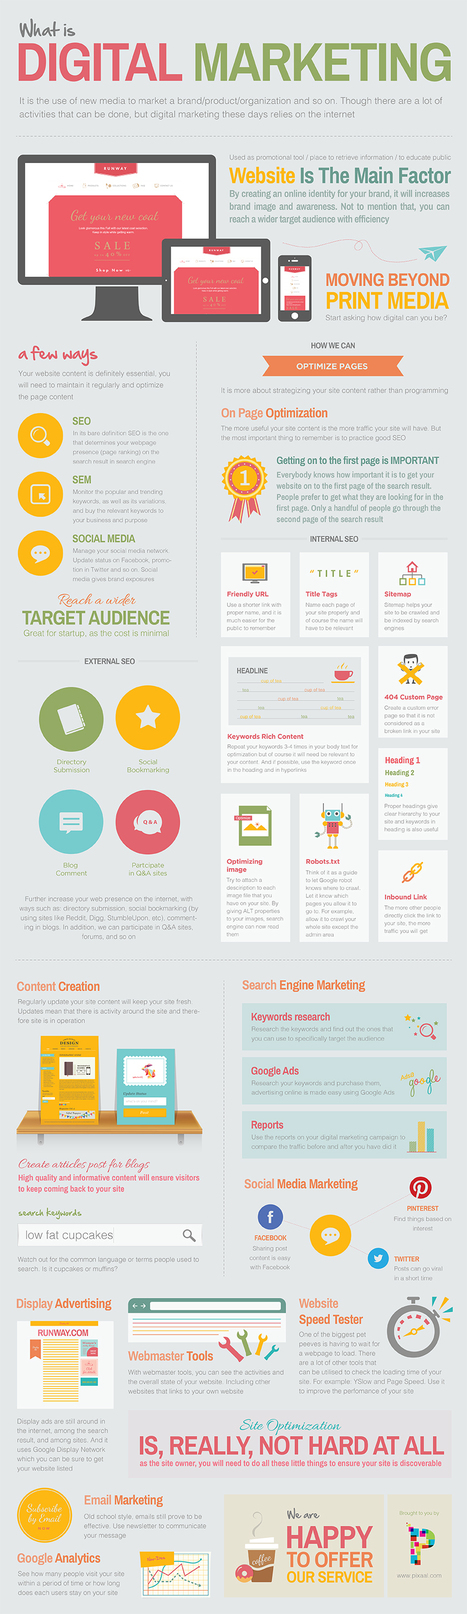 The Ultimate Guide To Understanding Digital Marketing [Infographic] | Digital & Social Media Marketing | Scoop.it